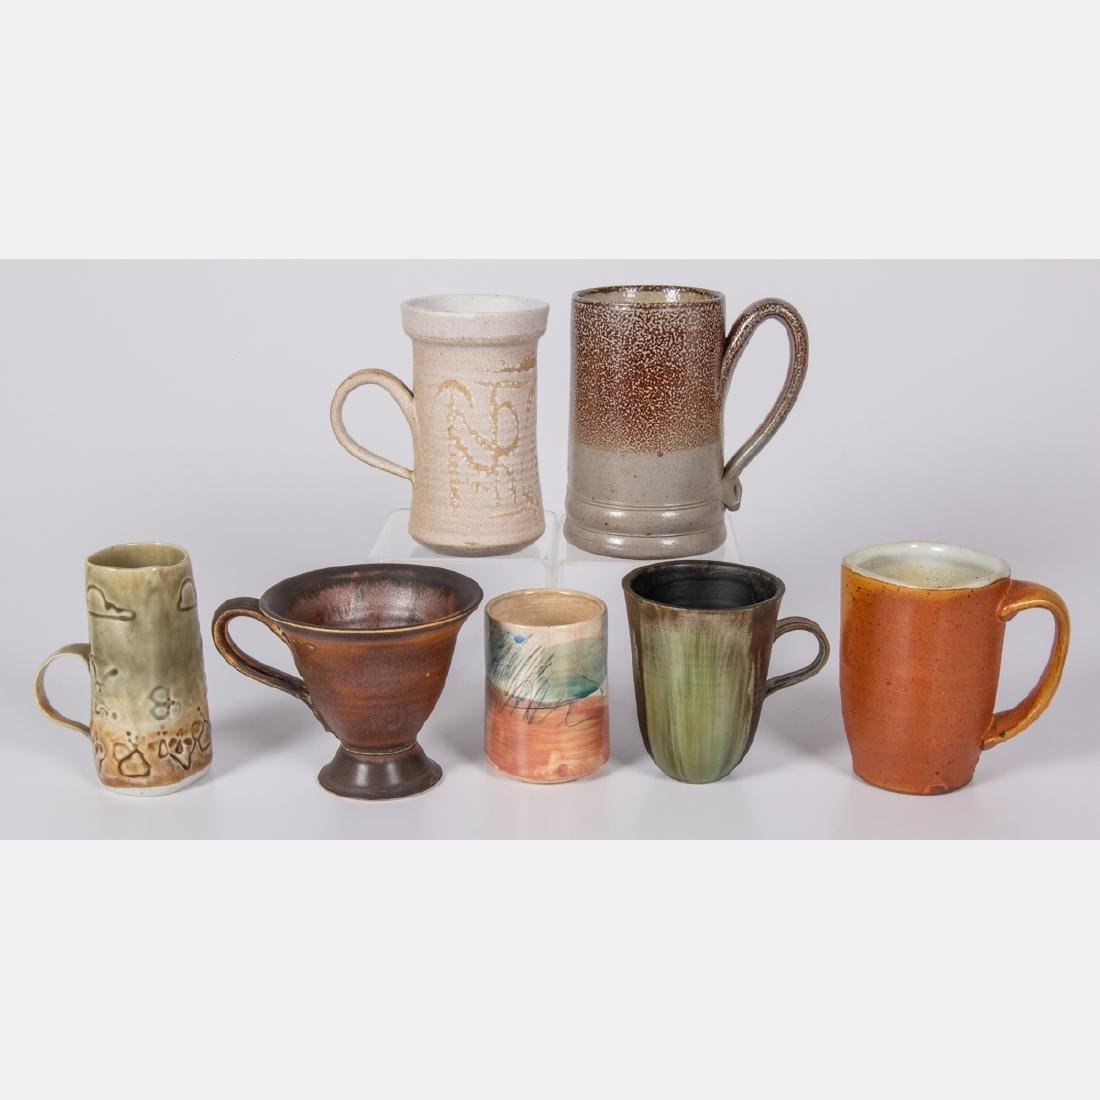 A Group of Seven Glazed Ceramic Mugs by Various Makers,